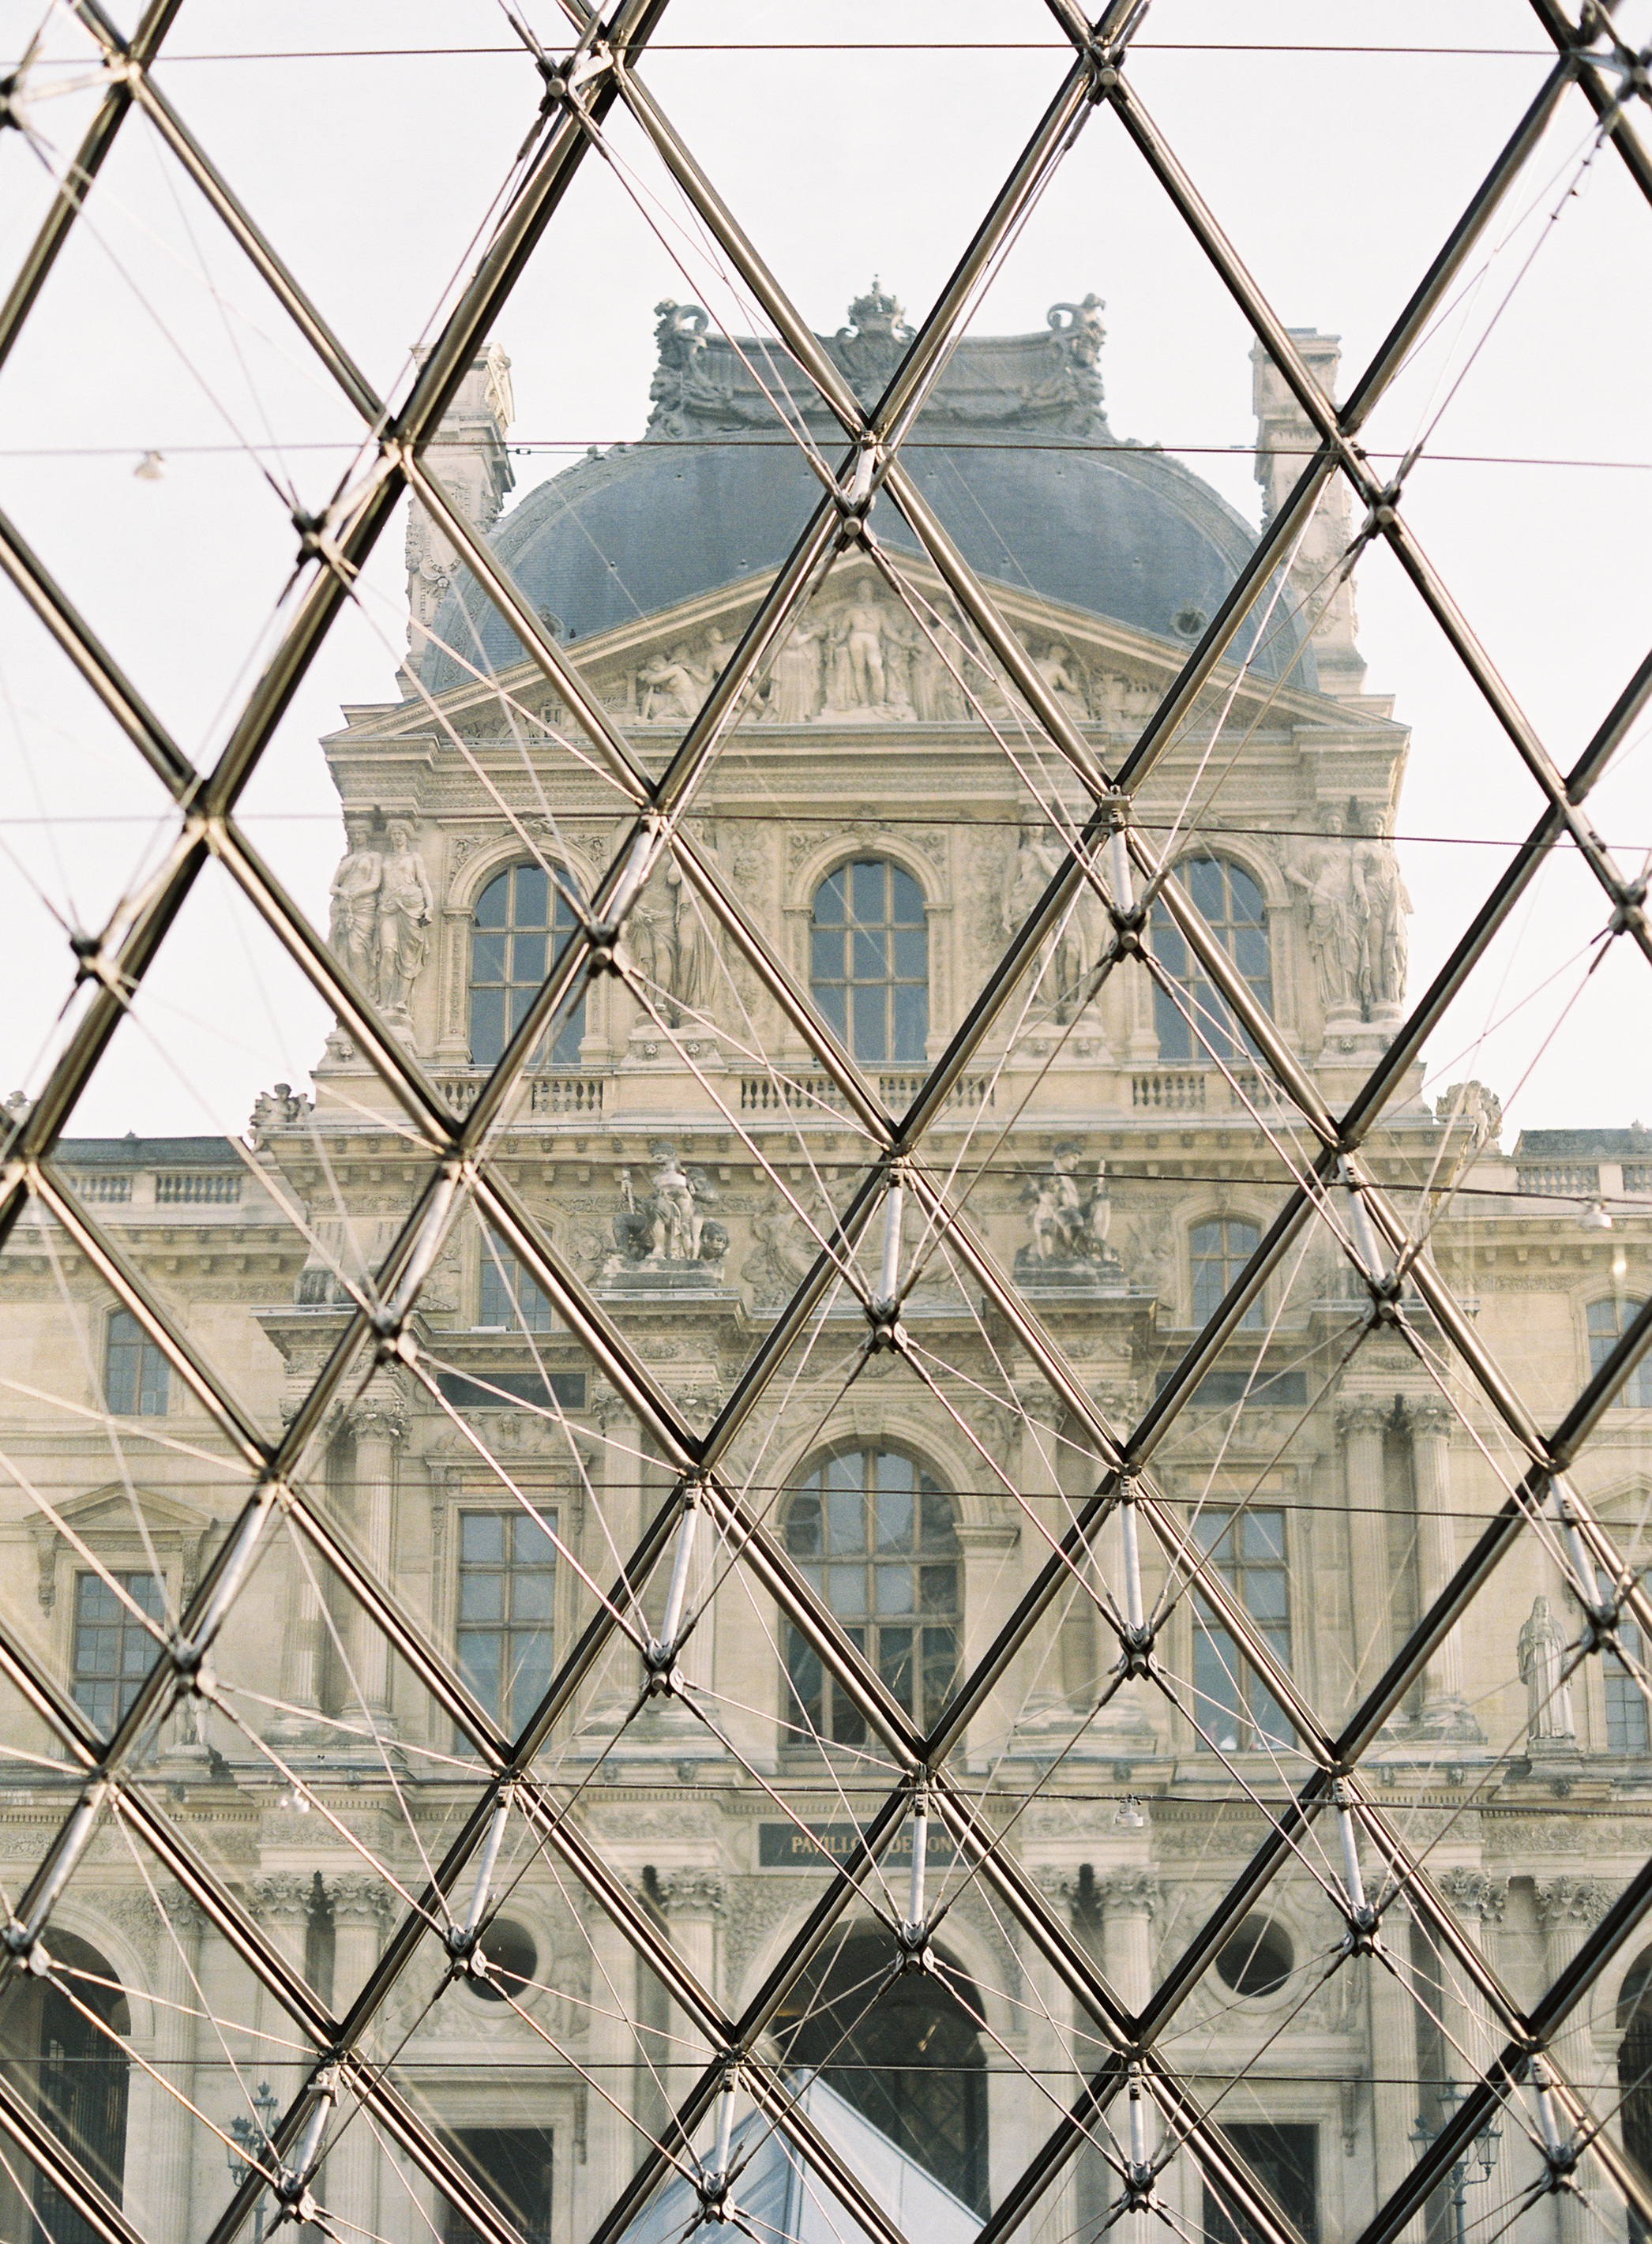 Musee' de Louvre - copyright: Carrie KinG Photographer